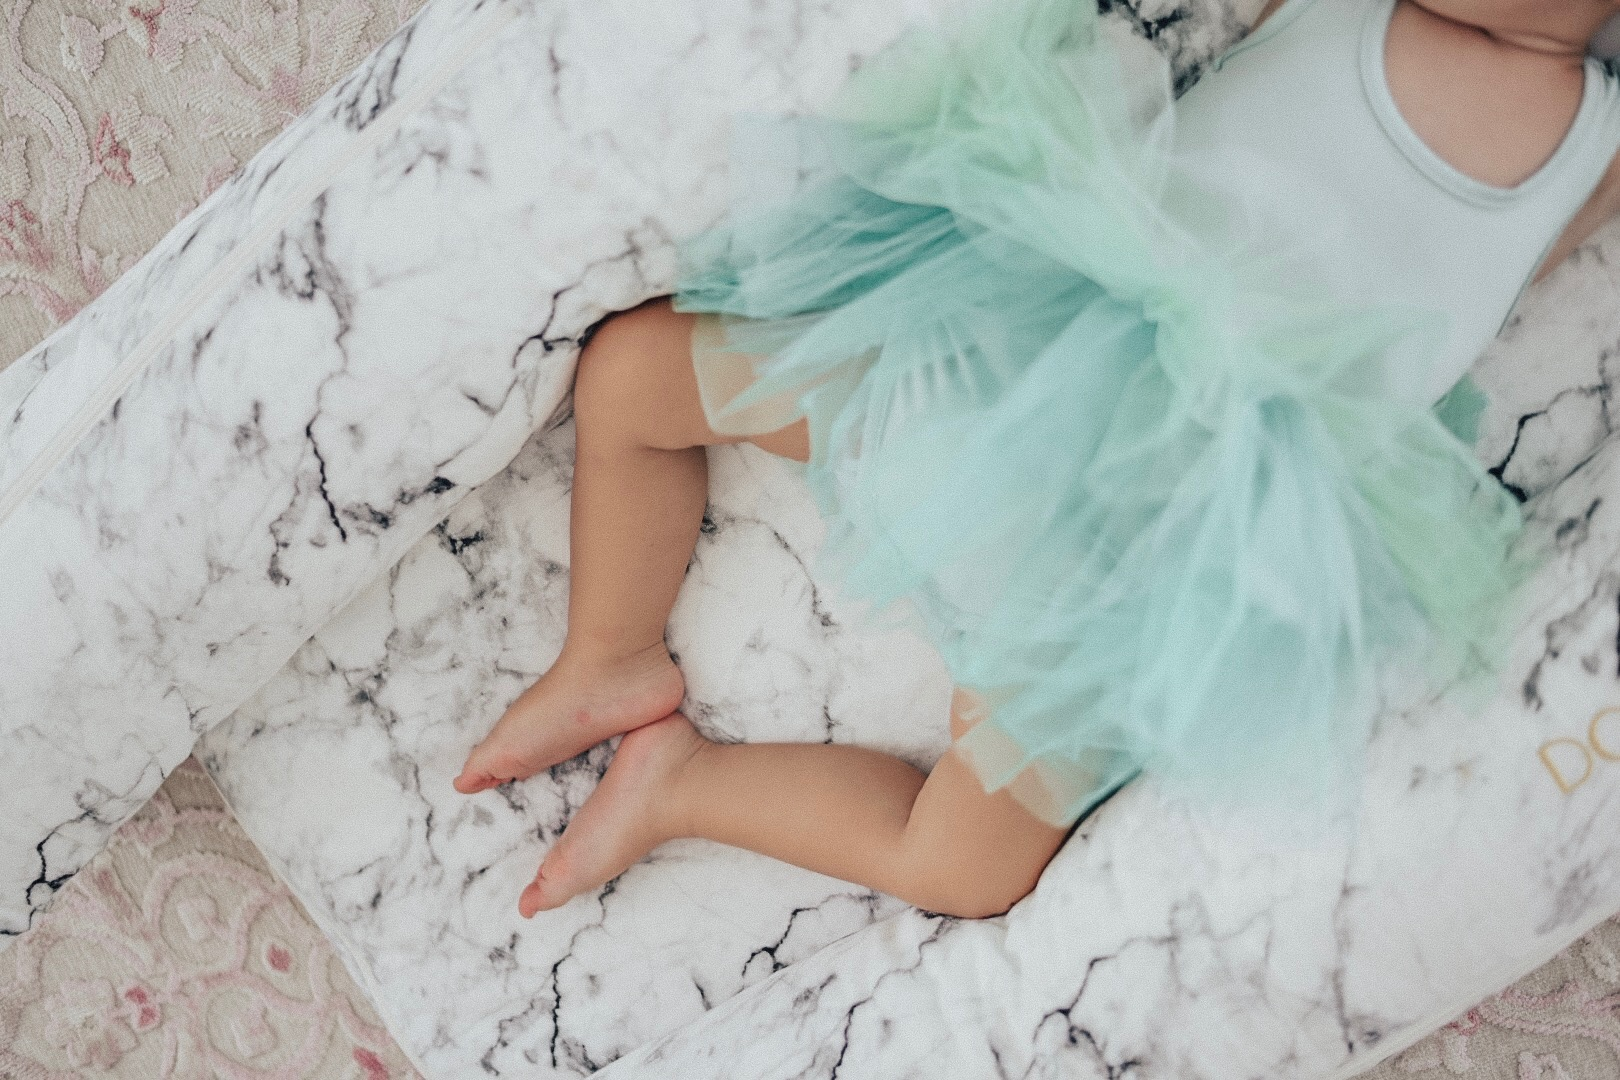 Matilda napping comfortably on the floor of her nursery.